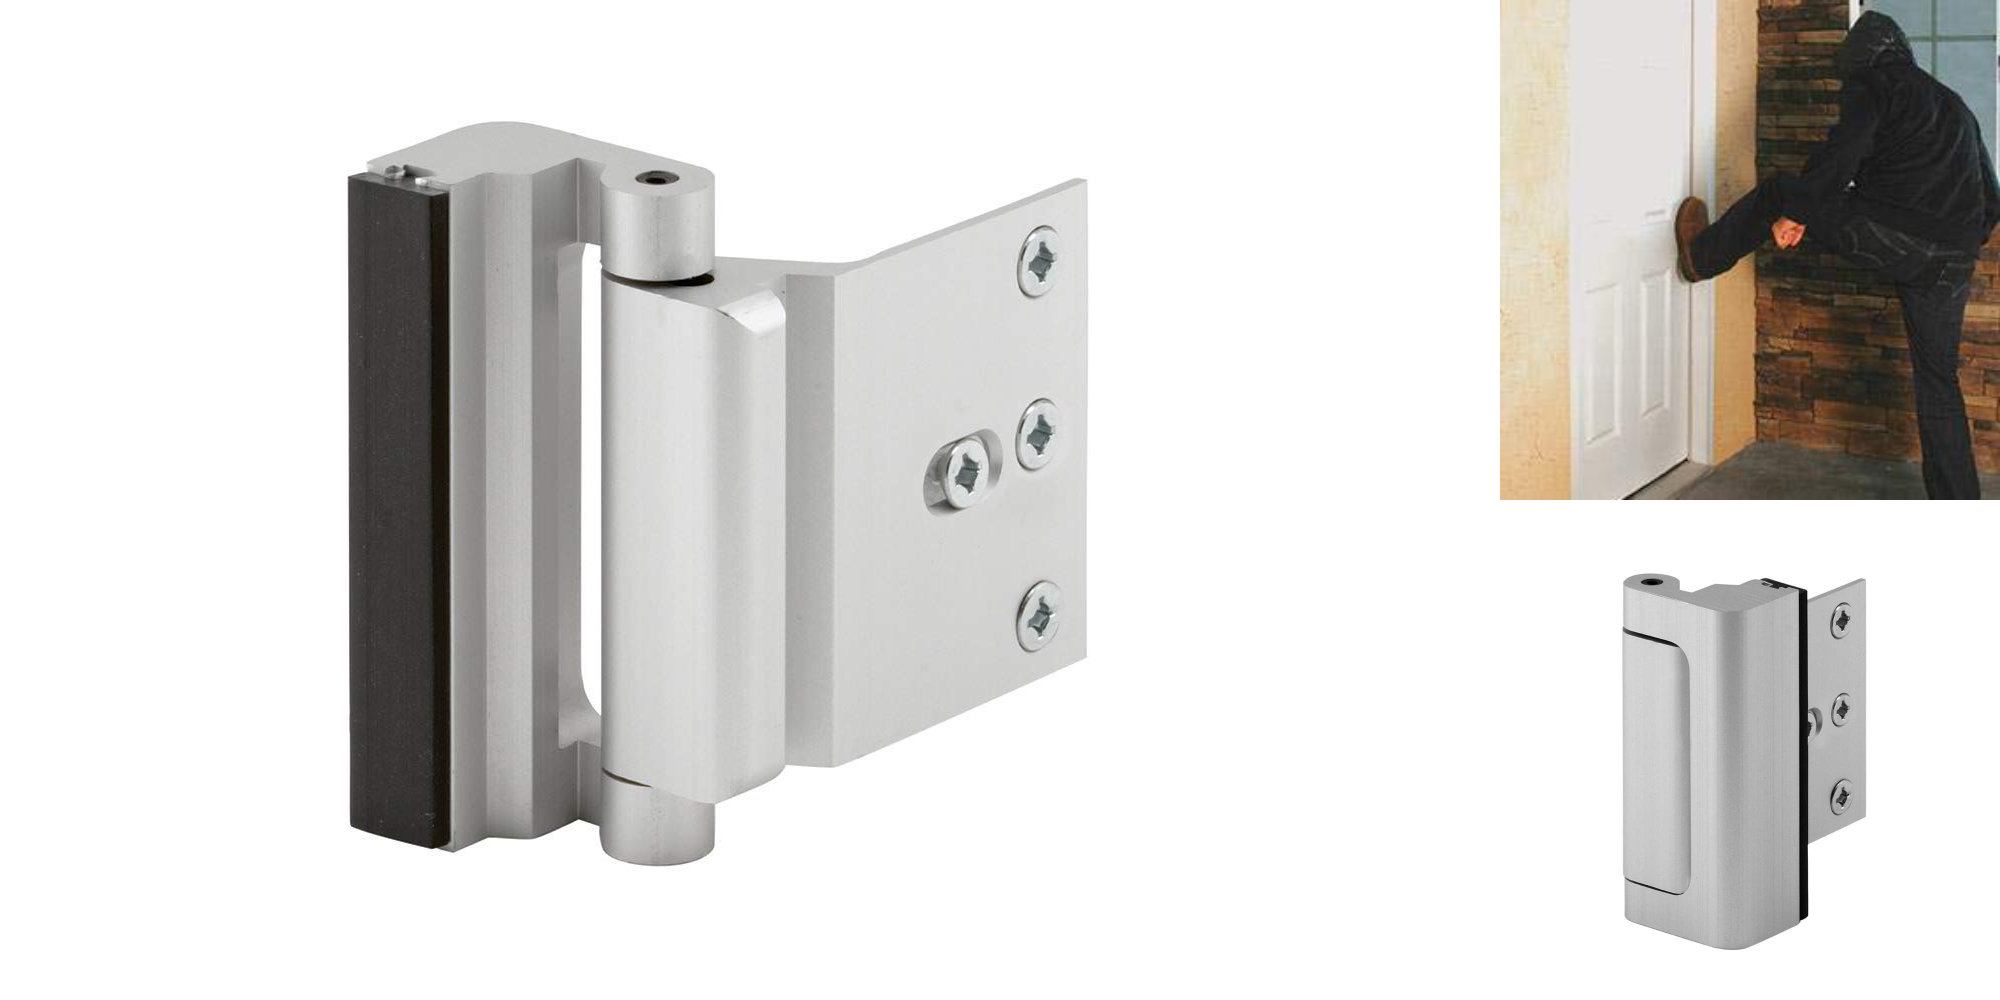 This reinforcement door lock can withstand 800 pounds of force: $12.50 (Amazon low)